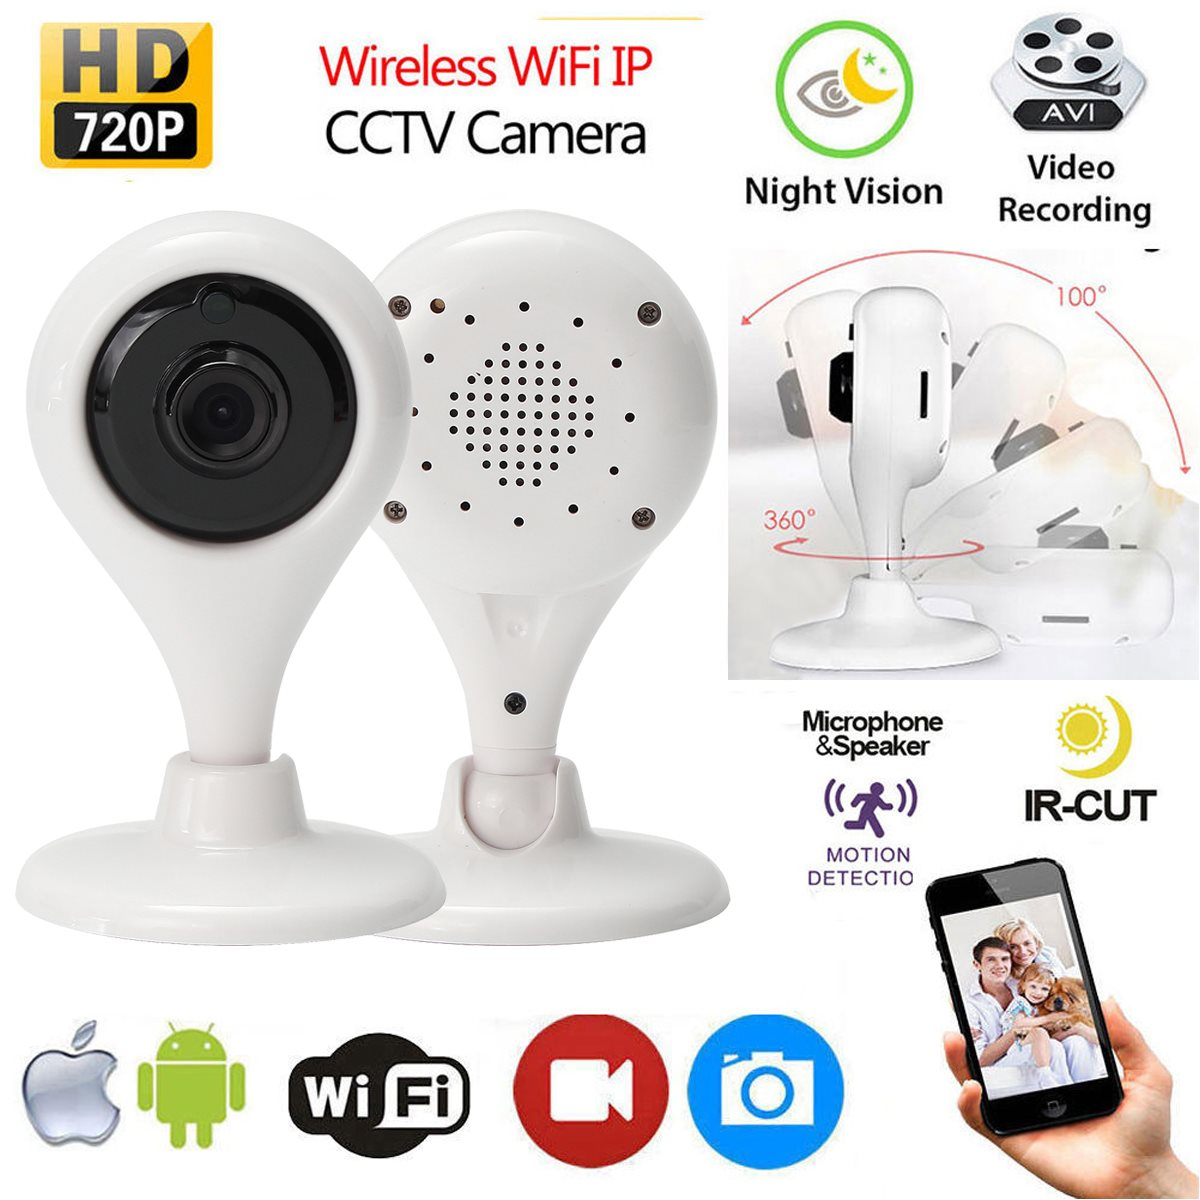 NEW HD 720P Smart Wireless Remote WIFI IP CCTV Camera Outdoor Security Network Night Vision Surveillance Camera Baby Montors camera security home hd wireless network smart phone remote wifi night vision security monitoring